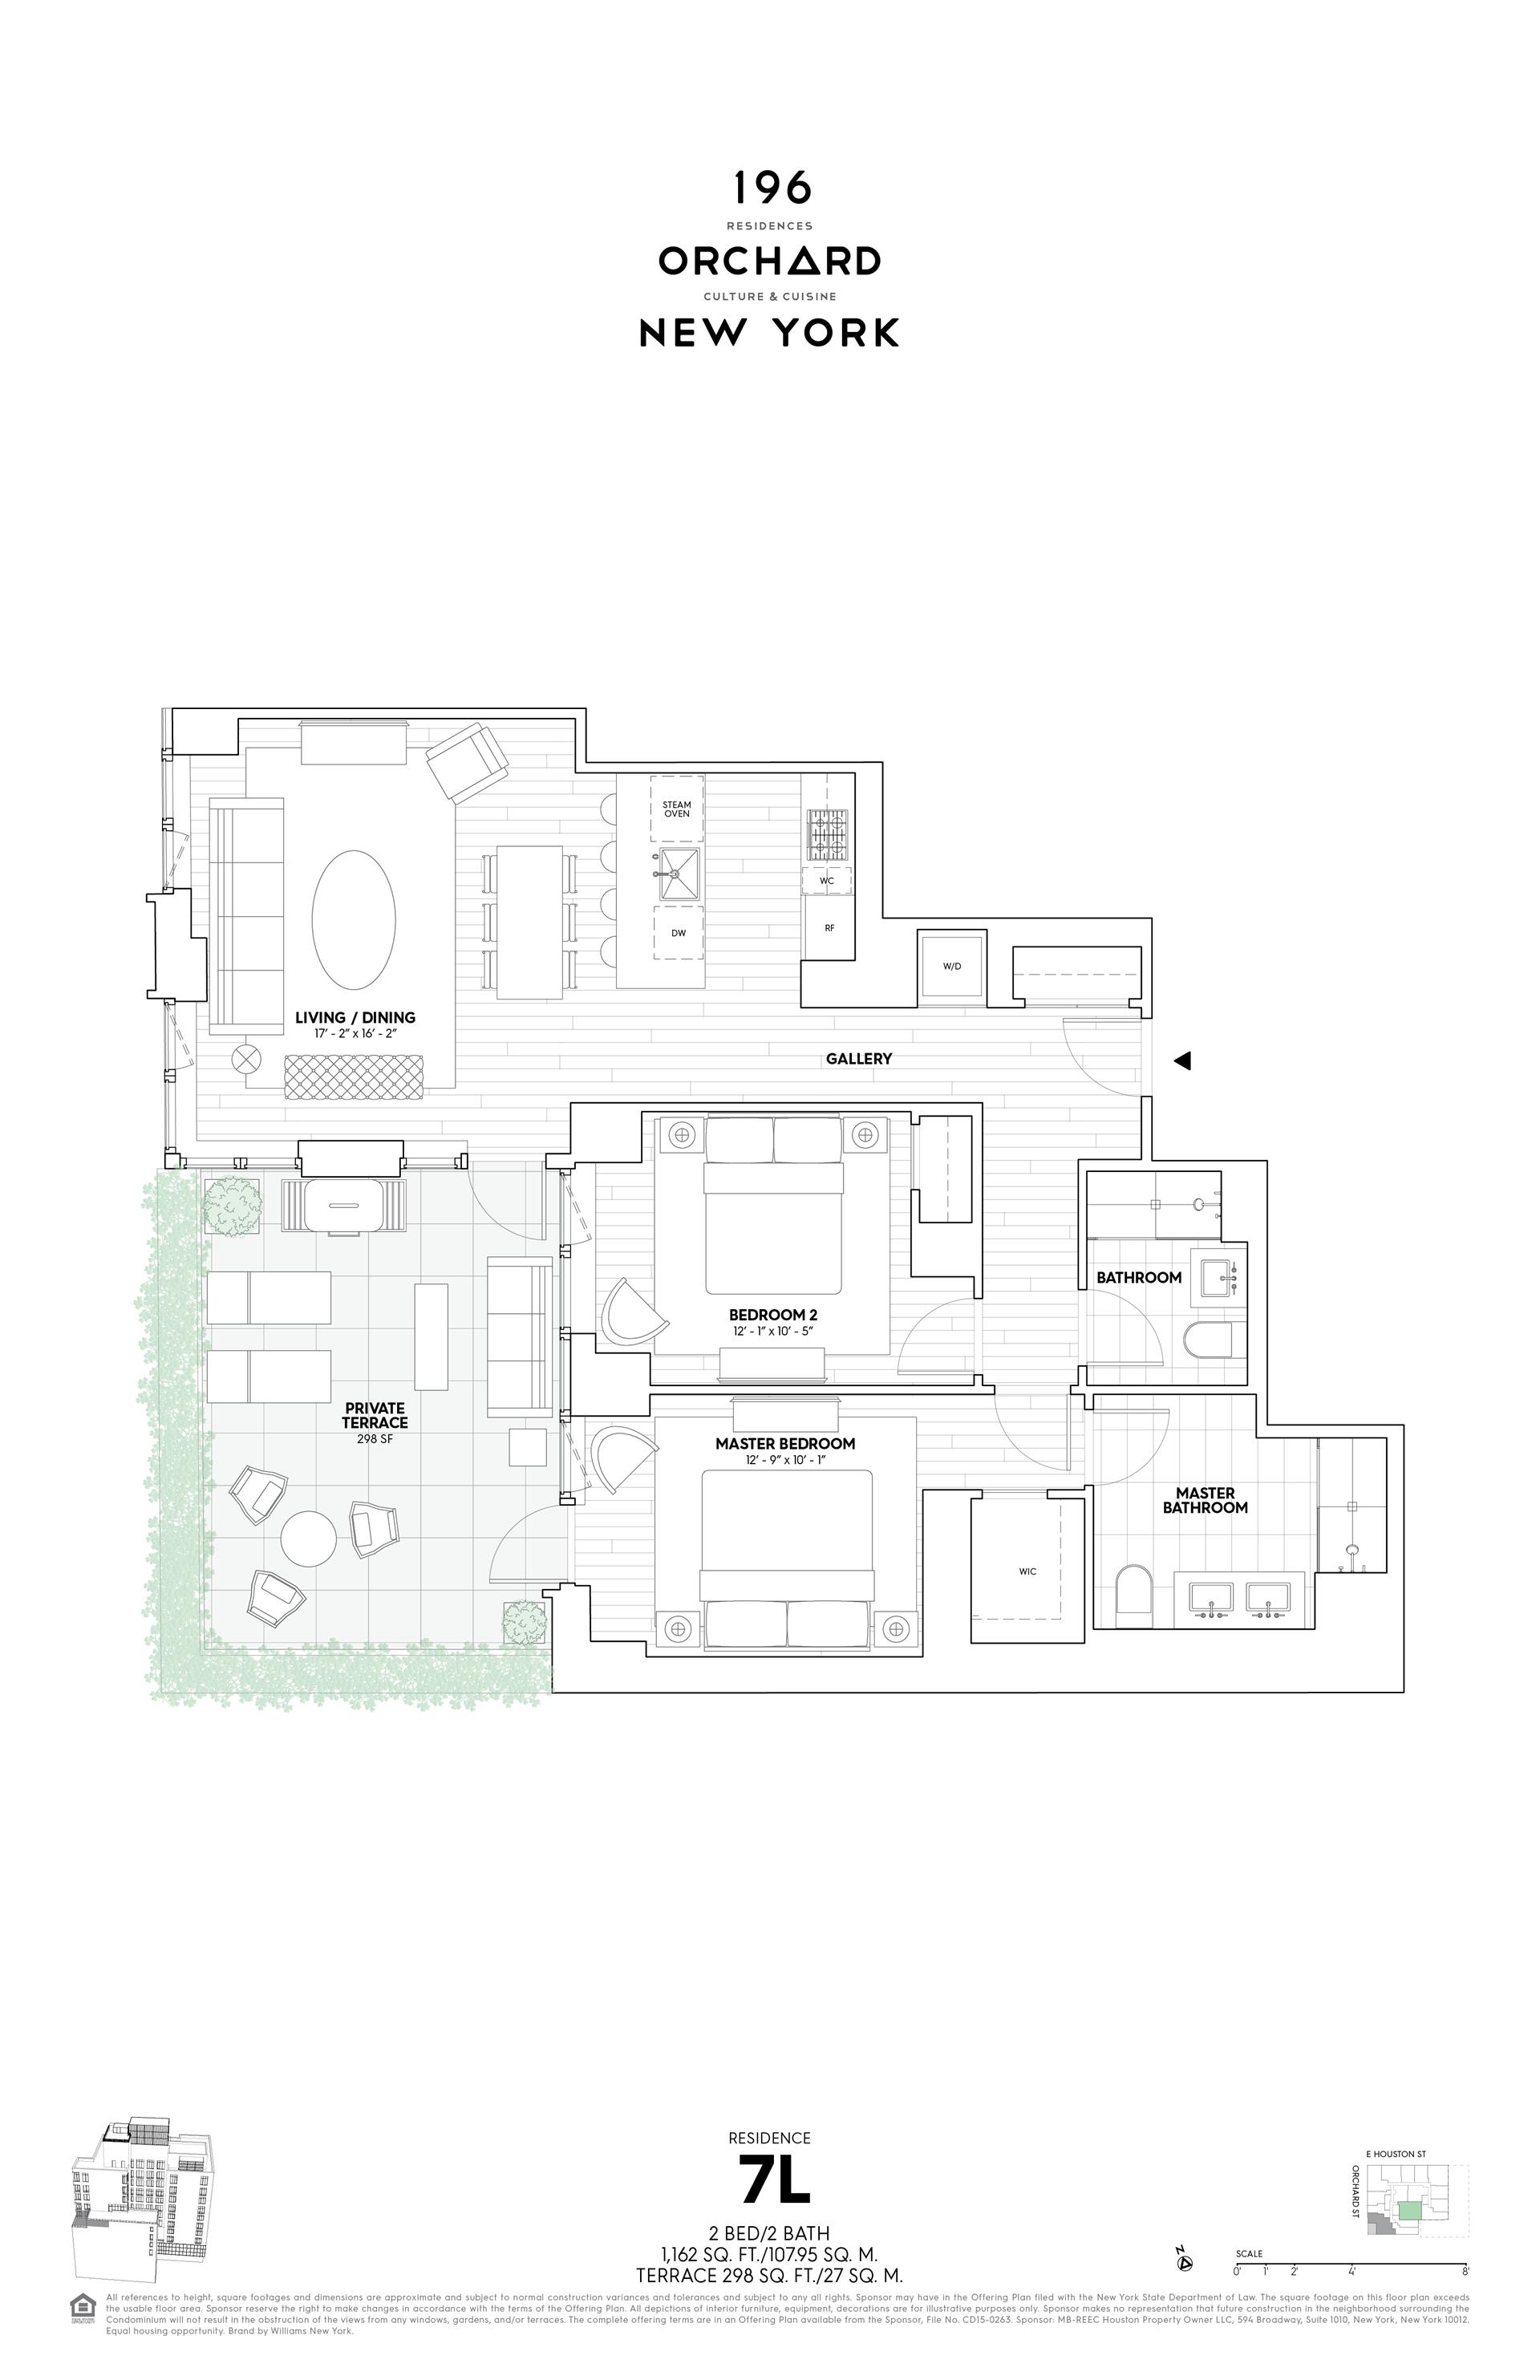 Floor plan of 196 Orchard St, 7L - Lower East Side, New York